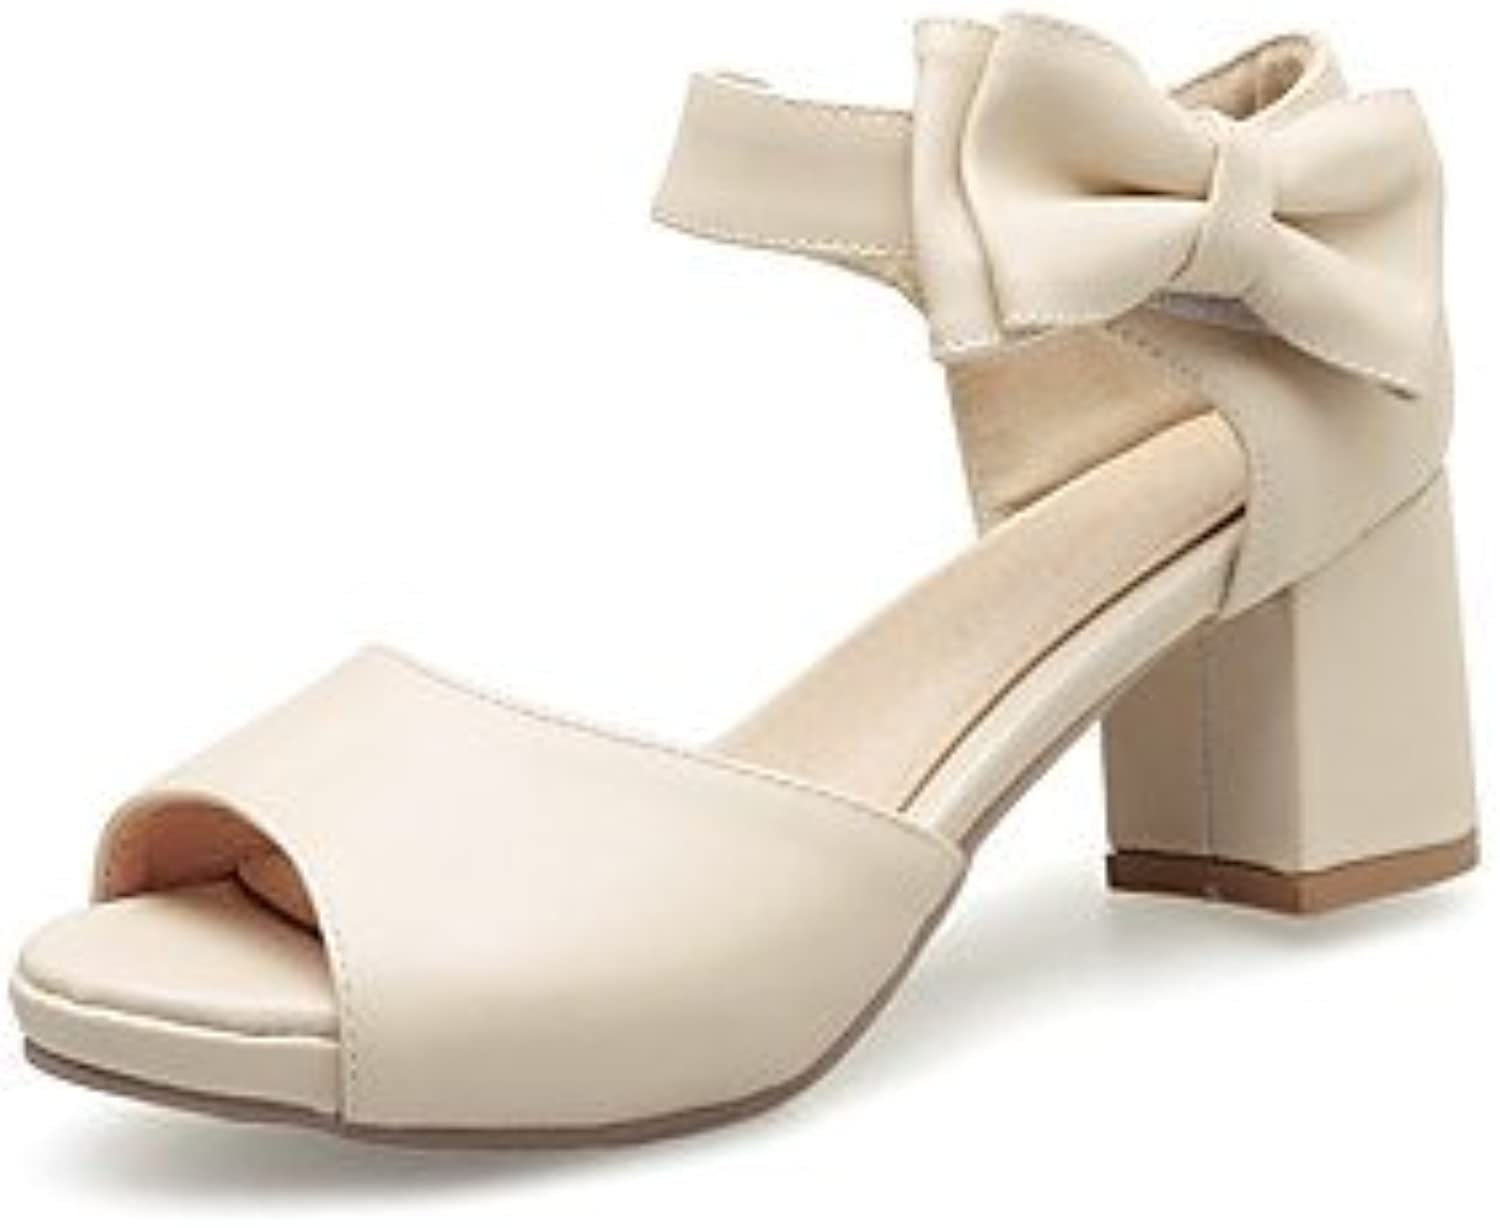 YFF Donna Sandali Casual in Similpelle Tacco Bowknot Hook & Loop,Beige,noi6.5-7   Qualità Stabile    Uomo/Donna Scarpa